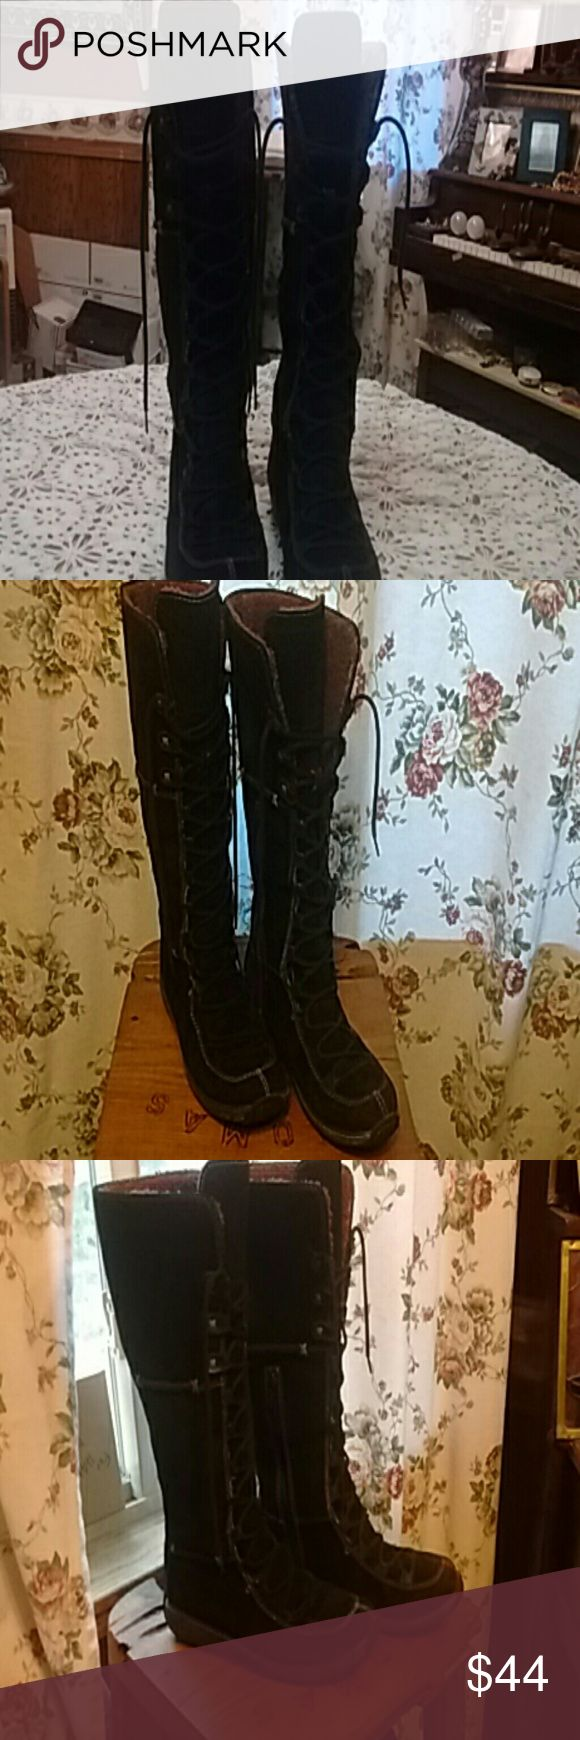 Boots( price non negotiable) Zip up on inside boot also lace up Timberland Shoes Lace Up Boots